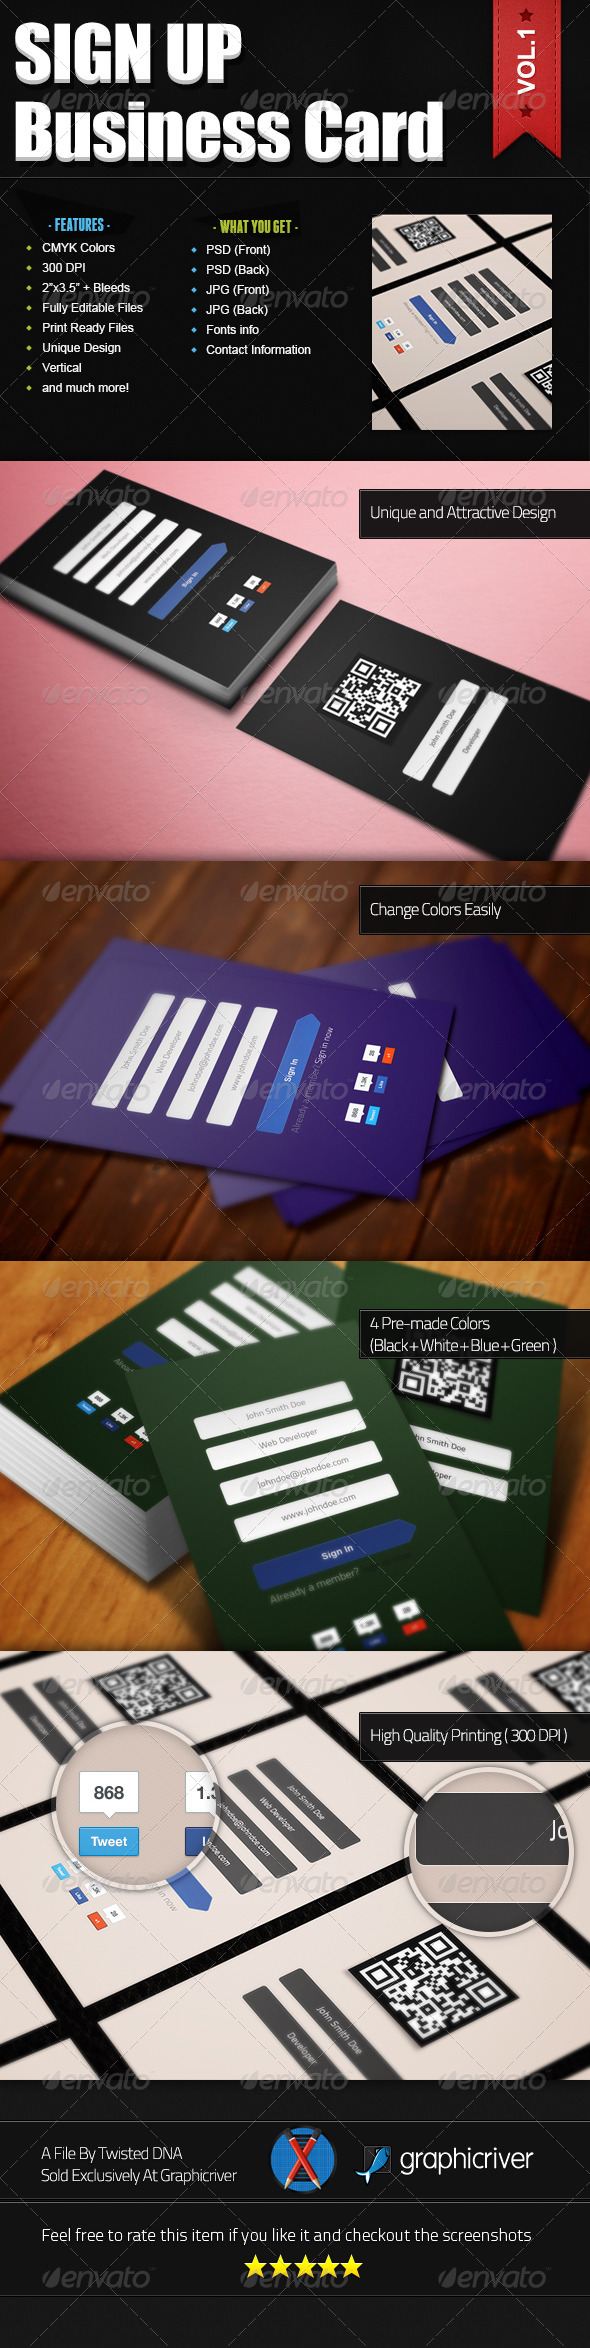 Sign Up Business Card - Creative Business Cards